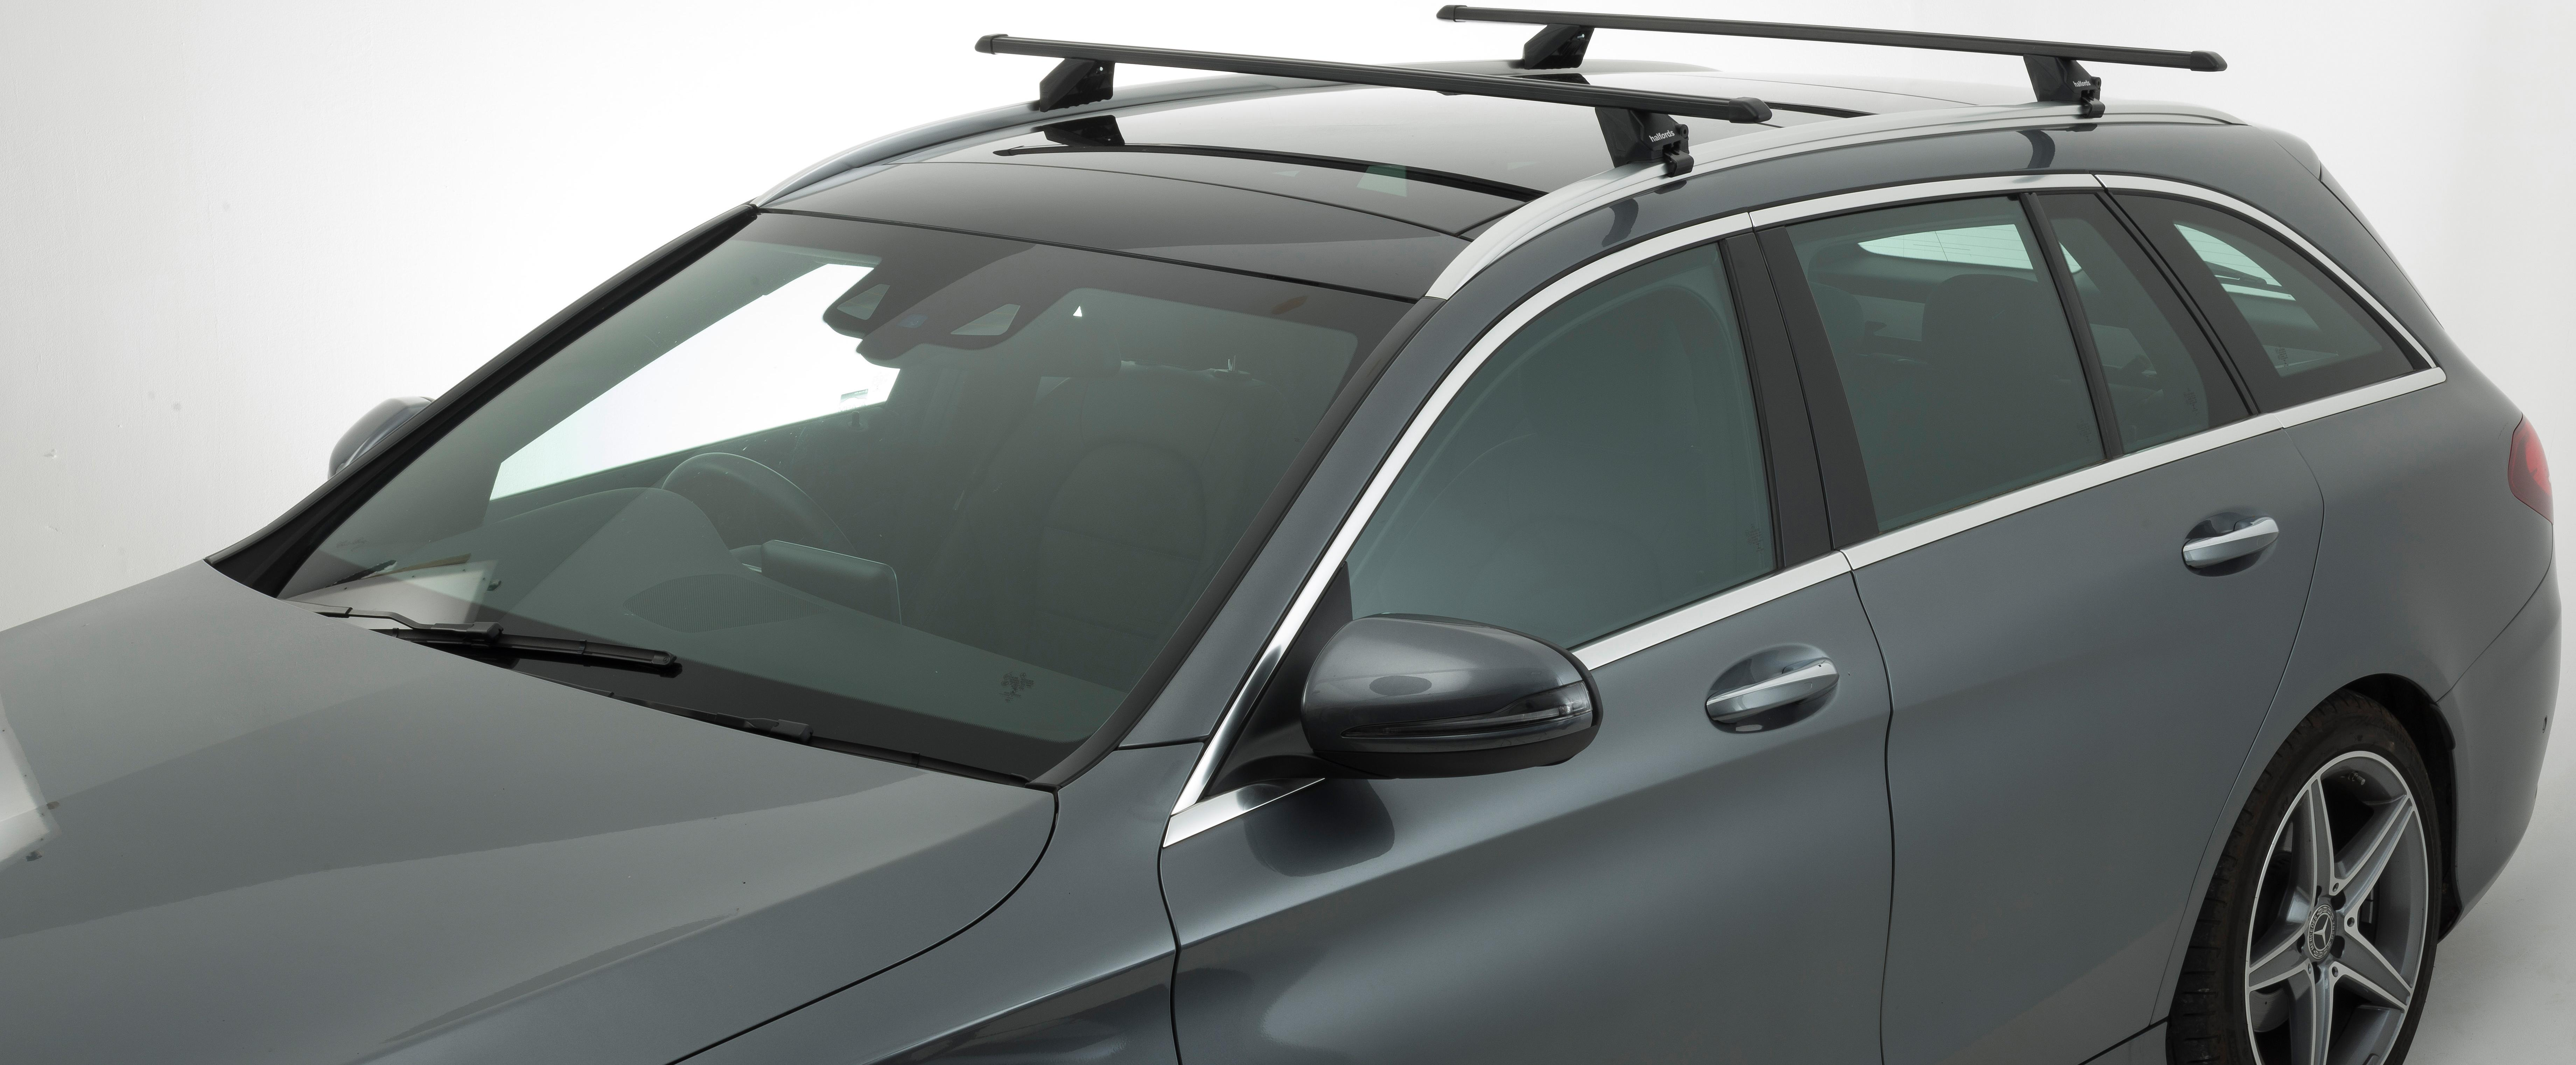 Halfords Integrated Rail Steel Preassembled X 2 Roof Bars